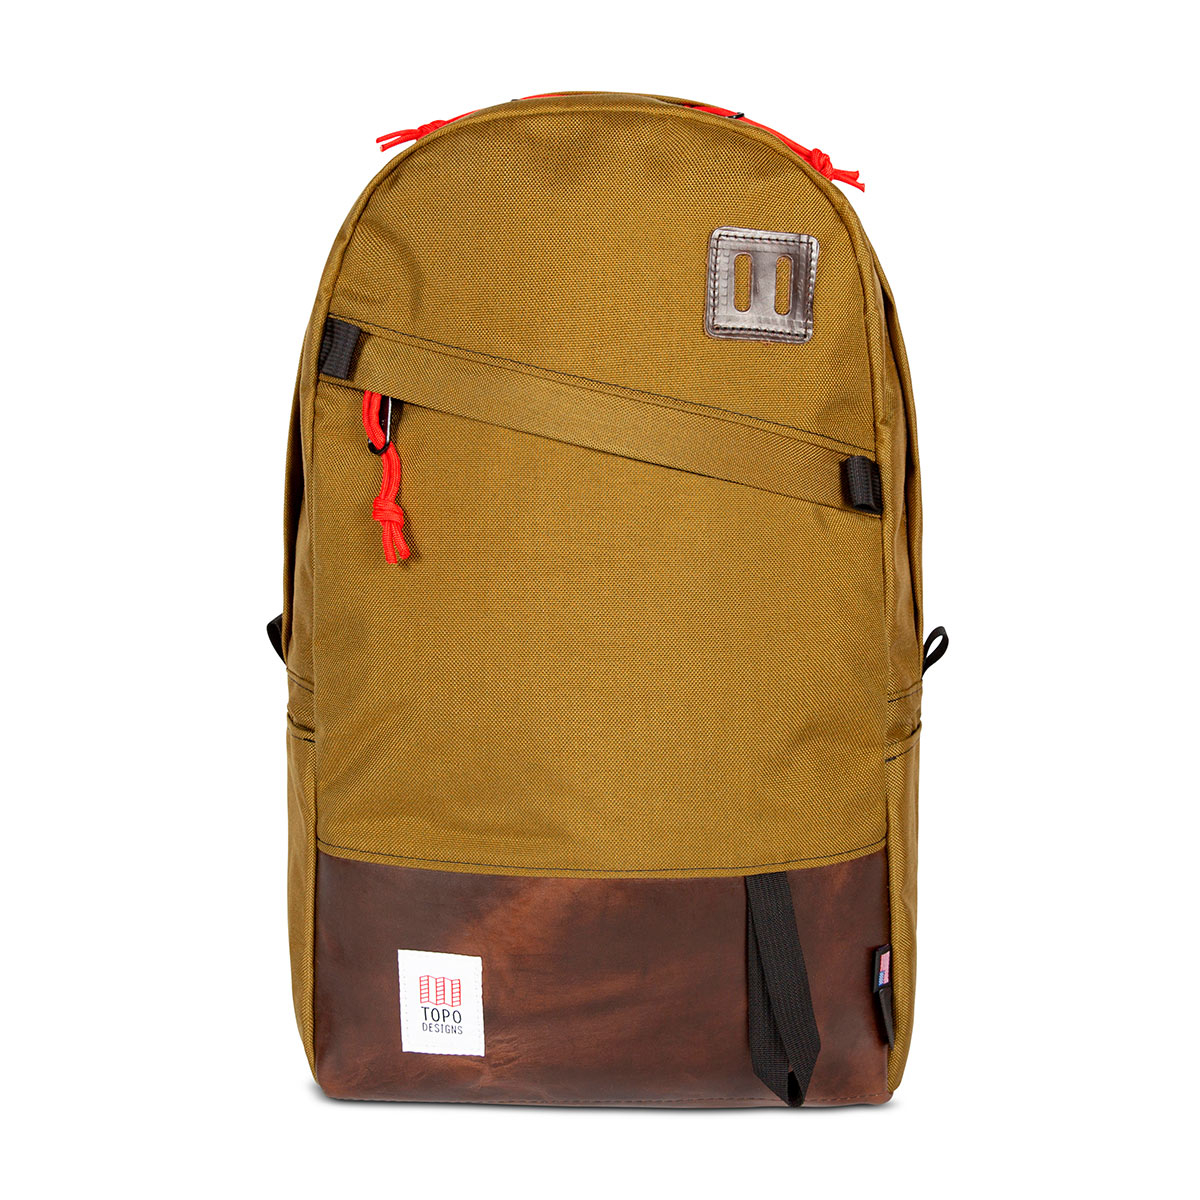 "Topo Designs Daypack Duck Brown/Dark Brown Leather, classic backpack in 1000d Cordura with 15"" laptopsleeve"